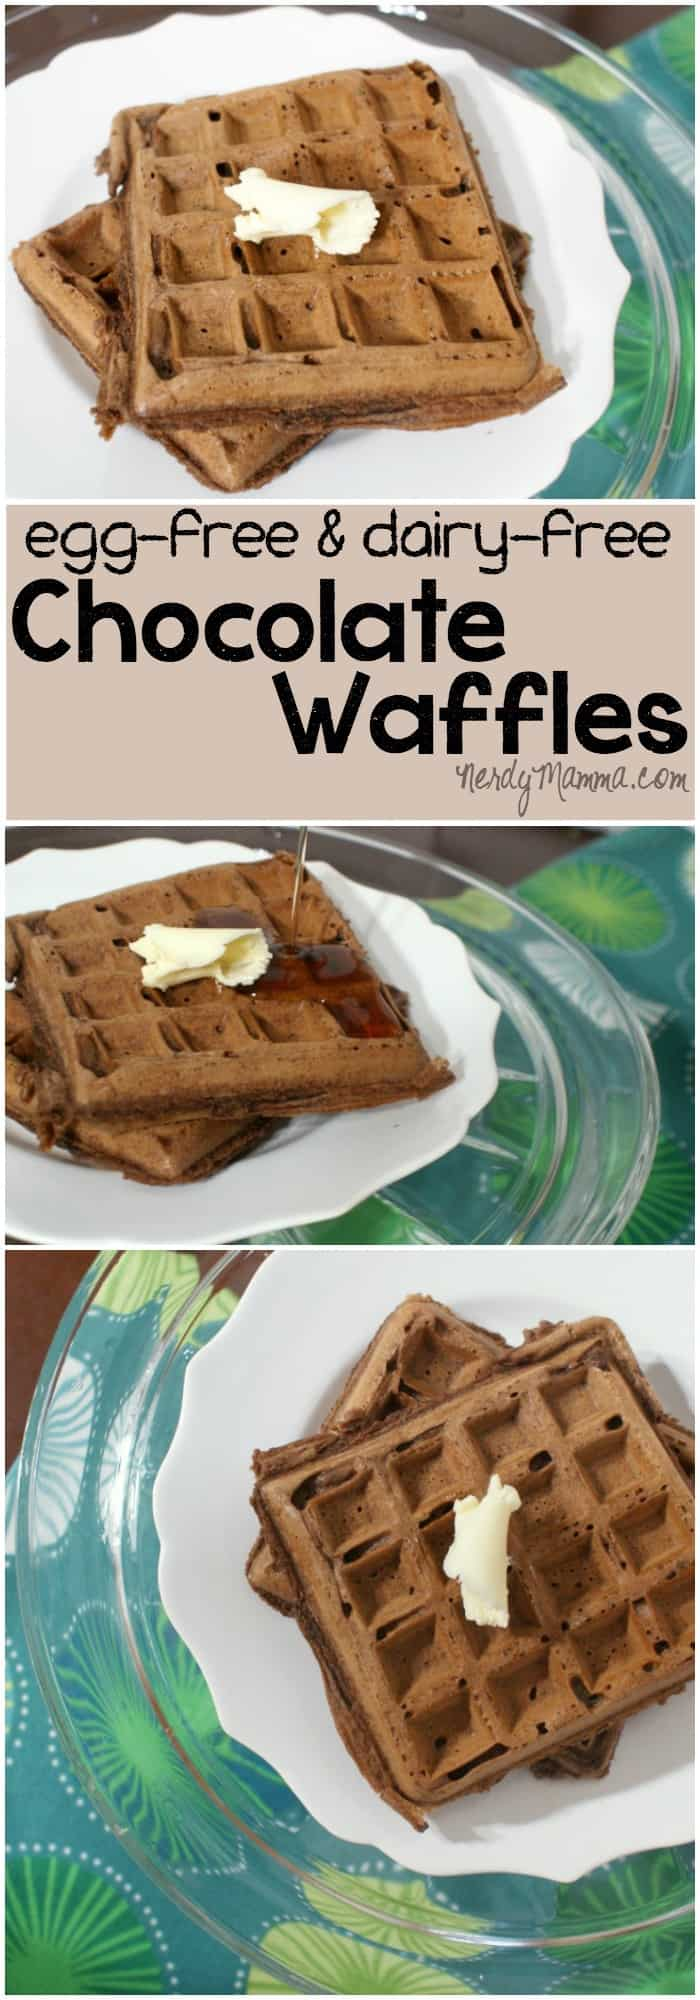 My whole family was so excited to have these vegan chocolate waffles. I mean, dairy-free and egg-free What deliciousness is this! LOL!